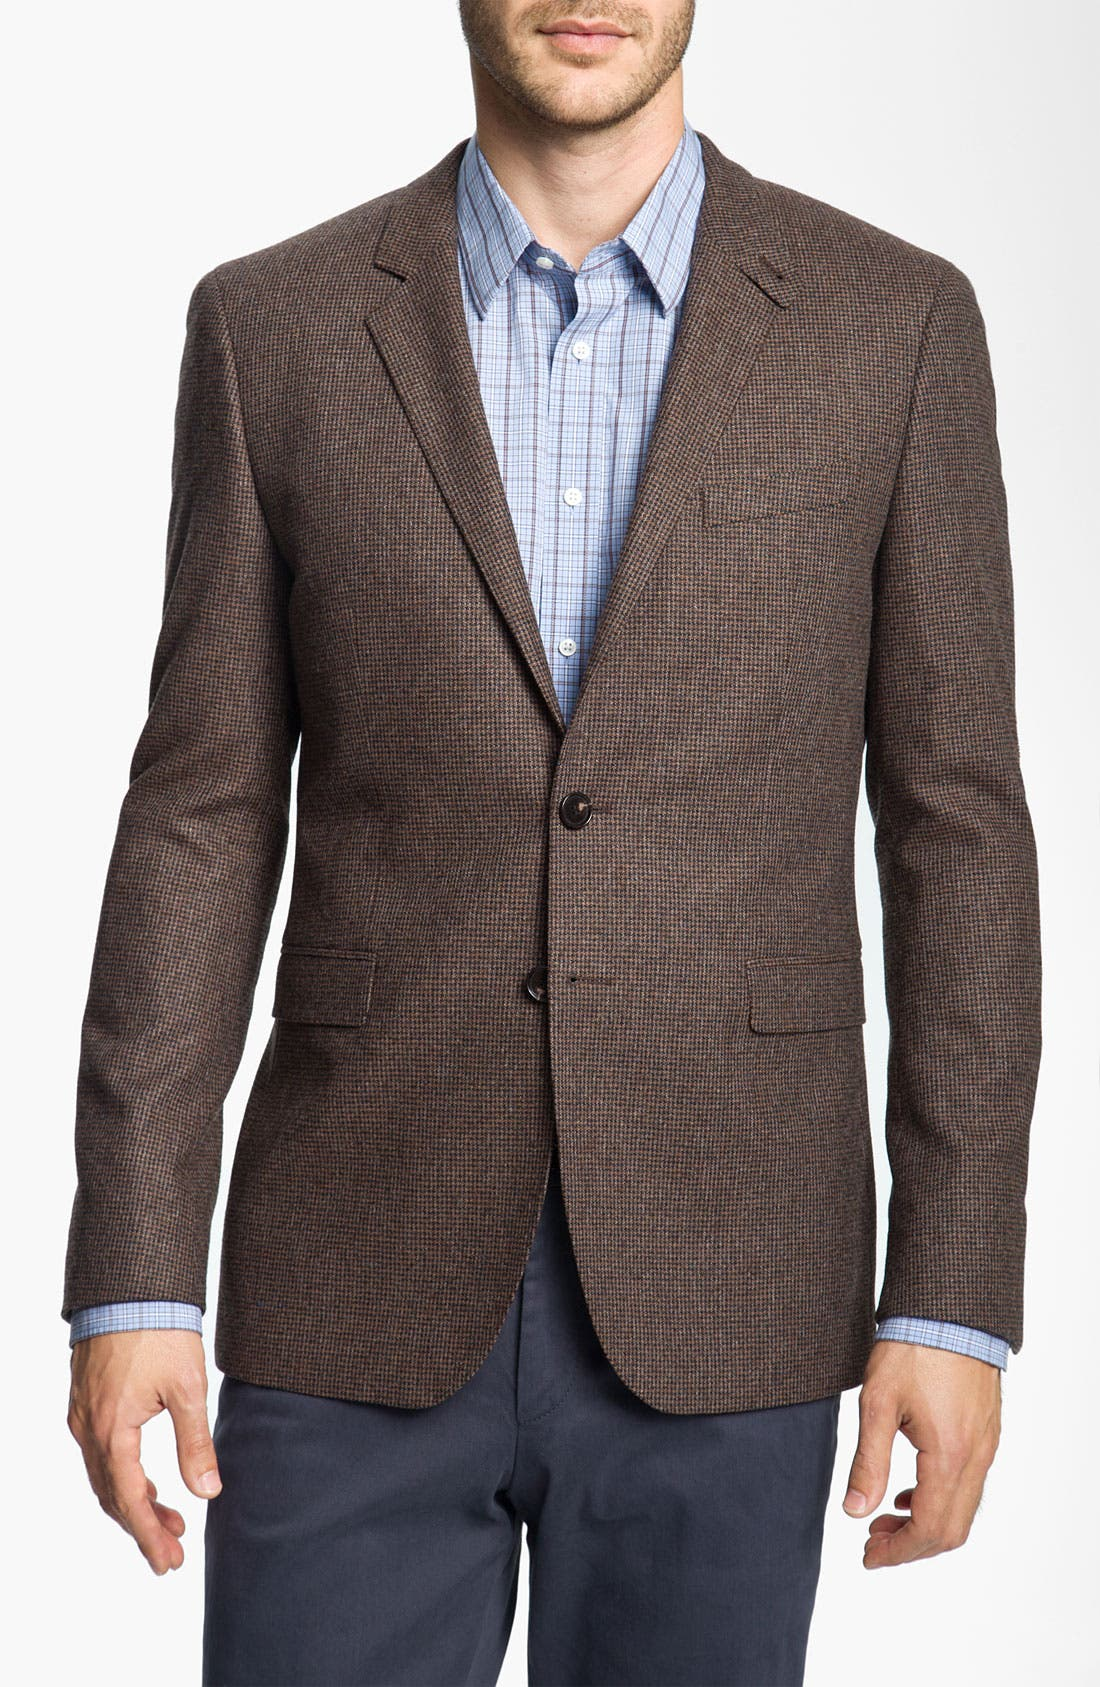 Main Image - BOSS Black 'Rhett' Houndstooth Sportcoat